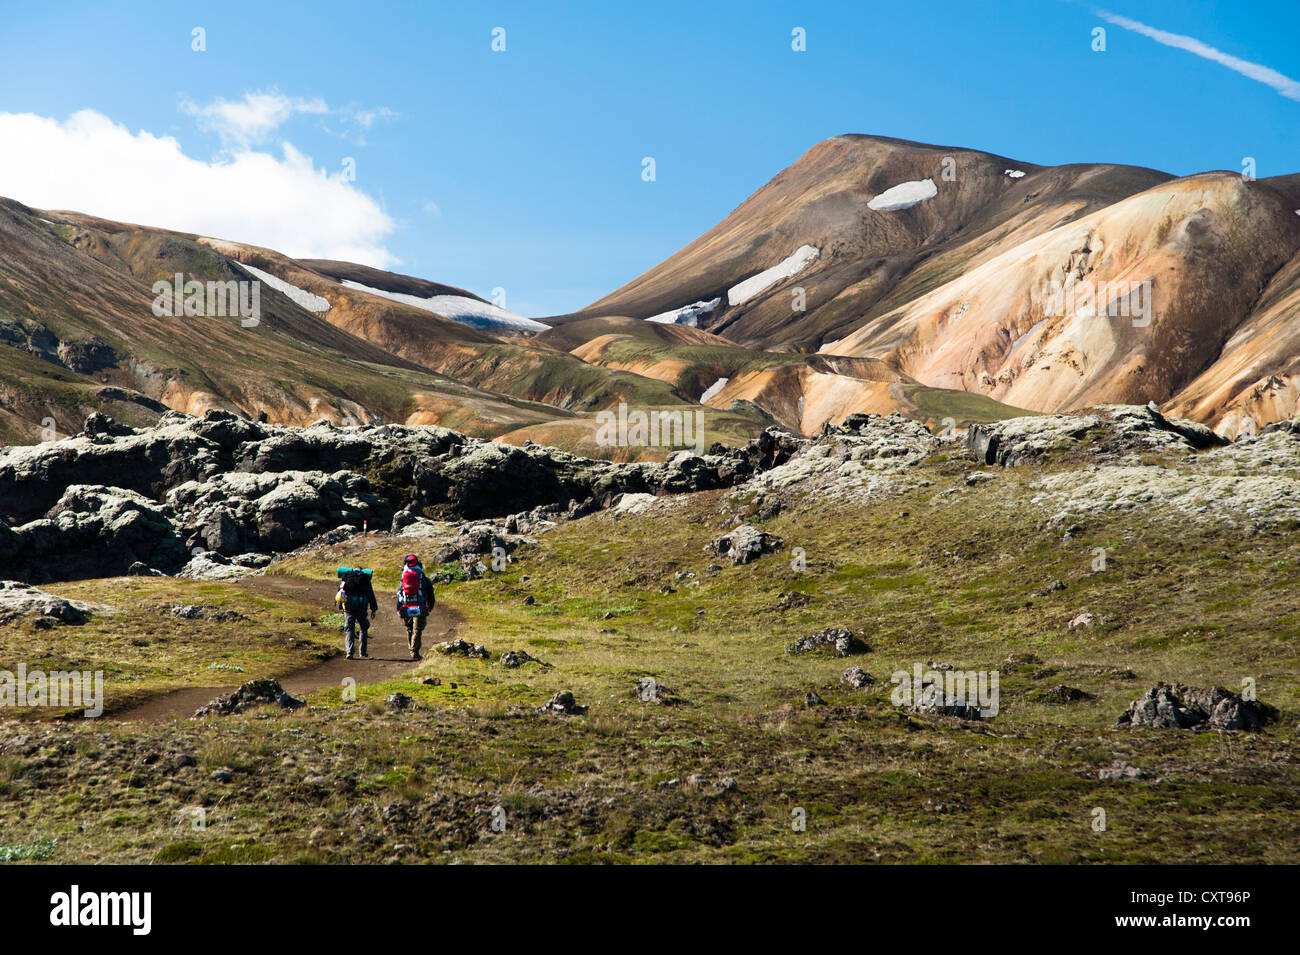 Hikers, Laugahraun lava field and rhyolite mountains on the Laugavegur hiking trail, Landmannalaugar Hrafntinnusker - Stock Image